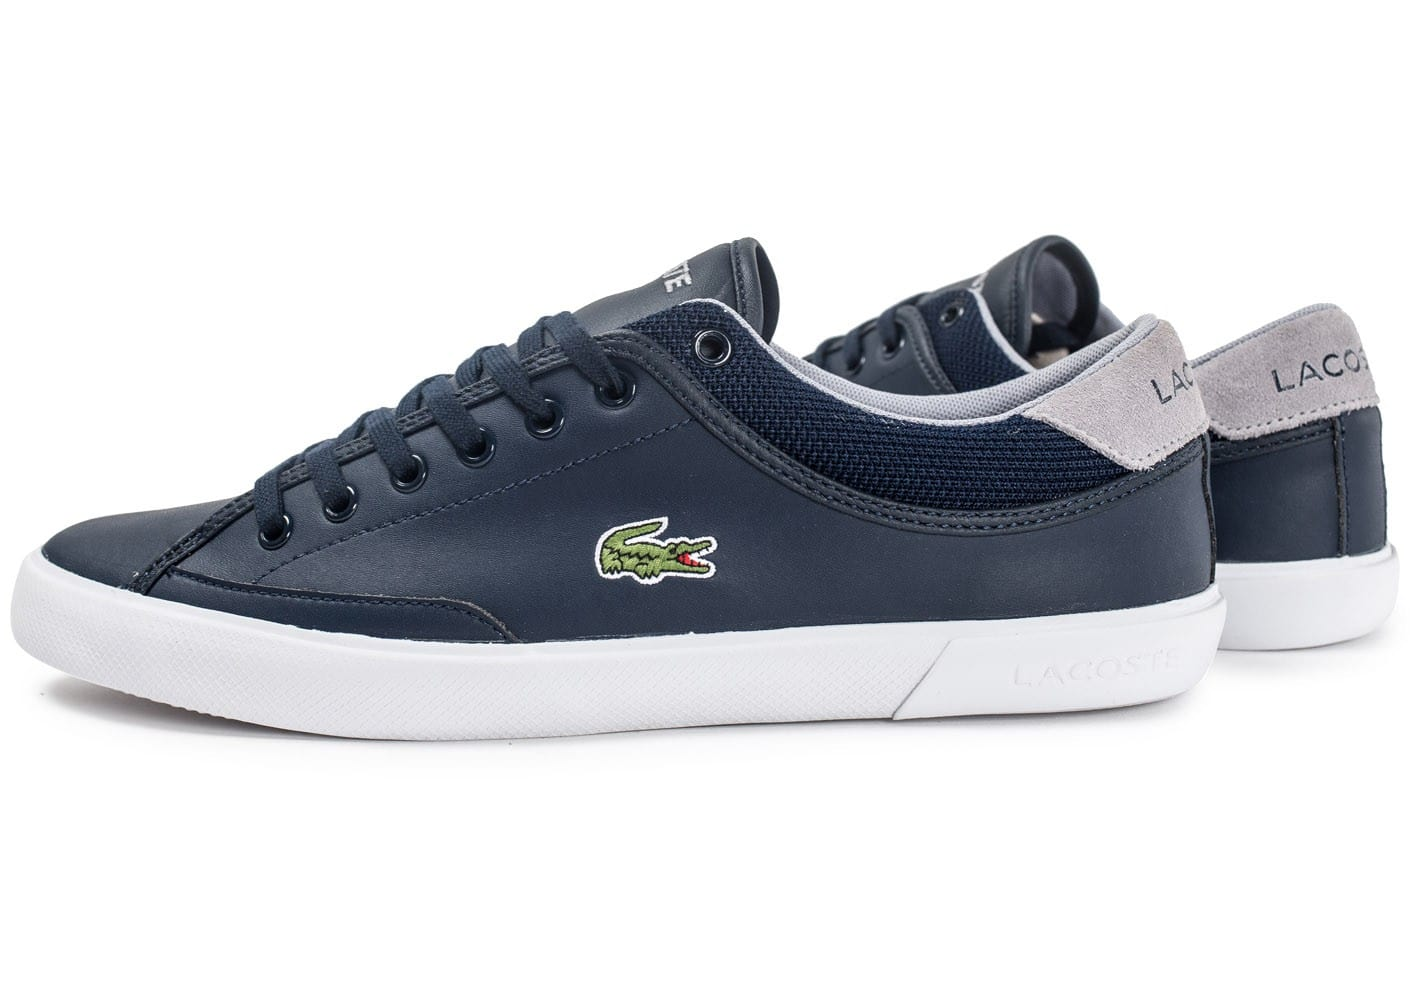 lacoste angha leather bleu marine chaussures homme chausport. Black Bedroom Furniture Sets. Home Design Ideas